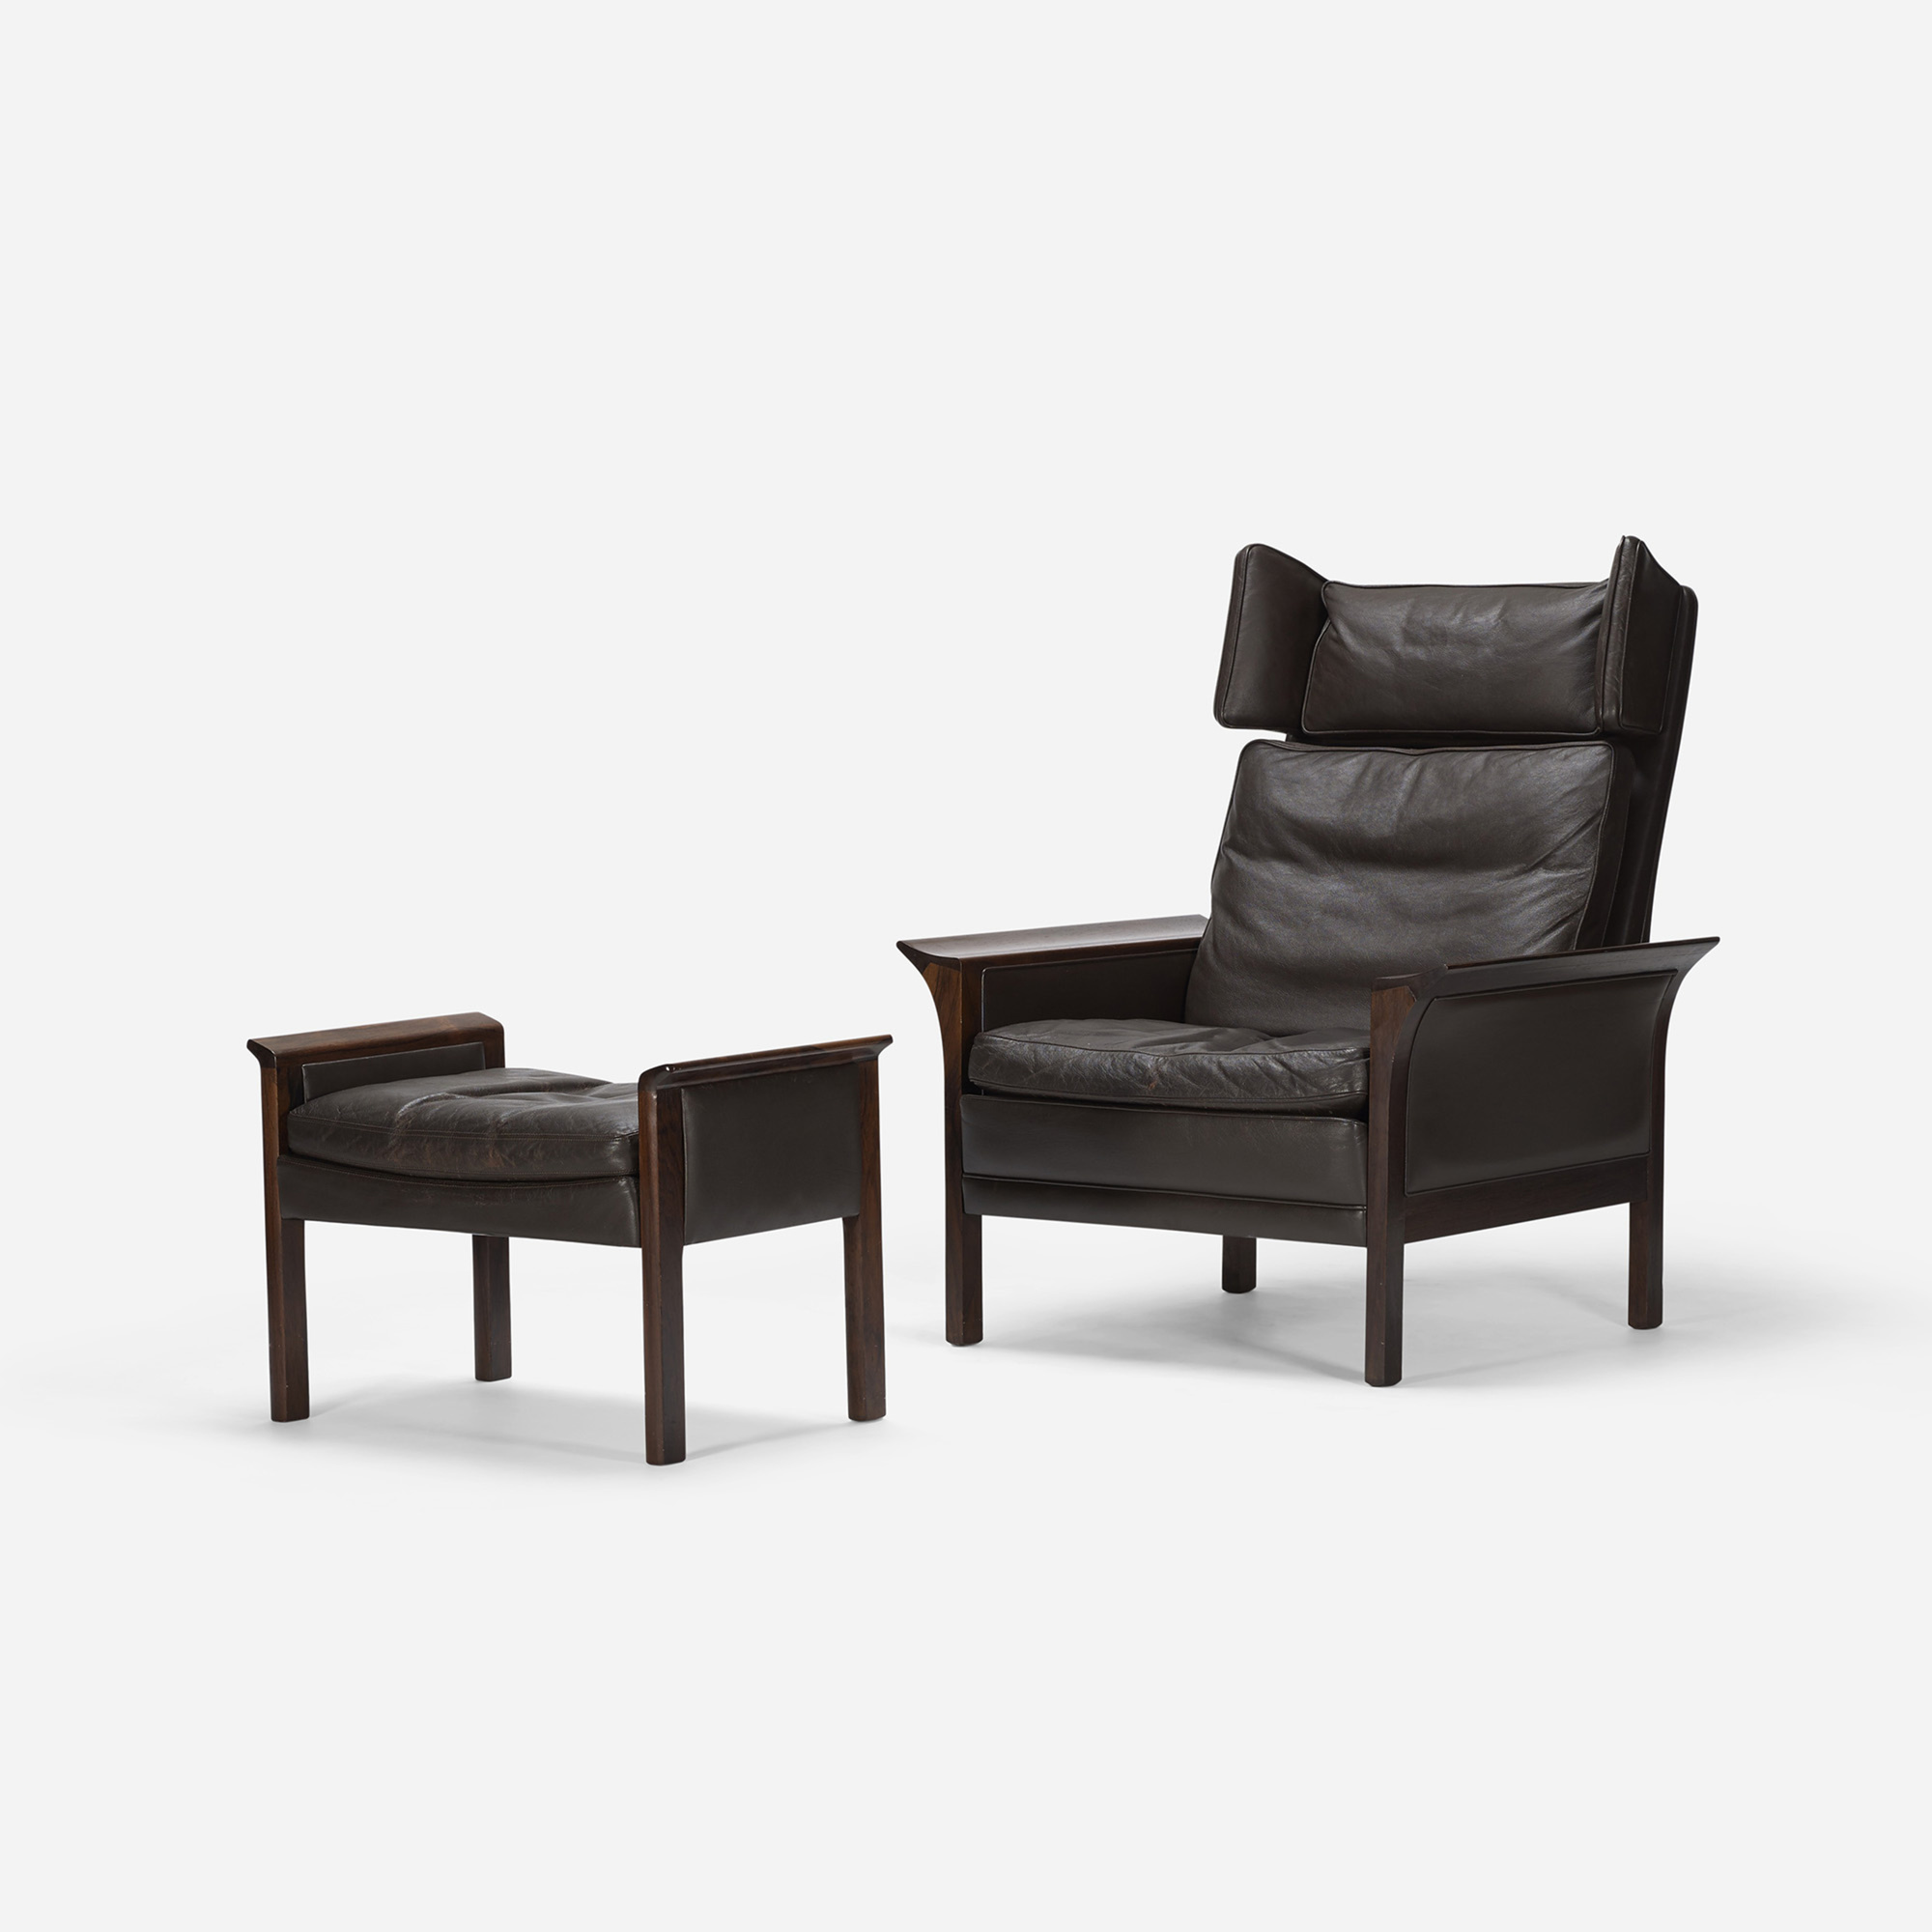 644: Hans Olsen / Lounge Chair And Ottoman, Model 500 H (1 Of